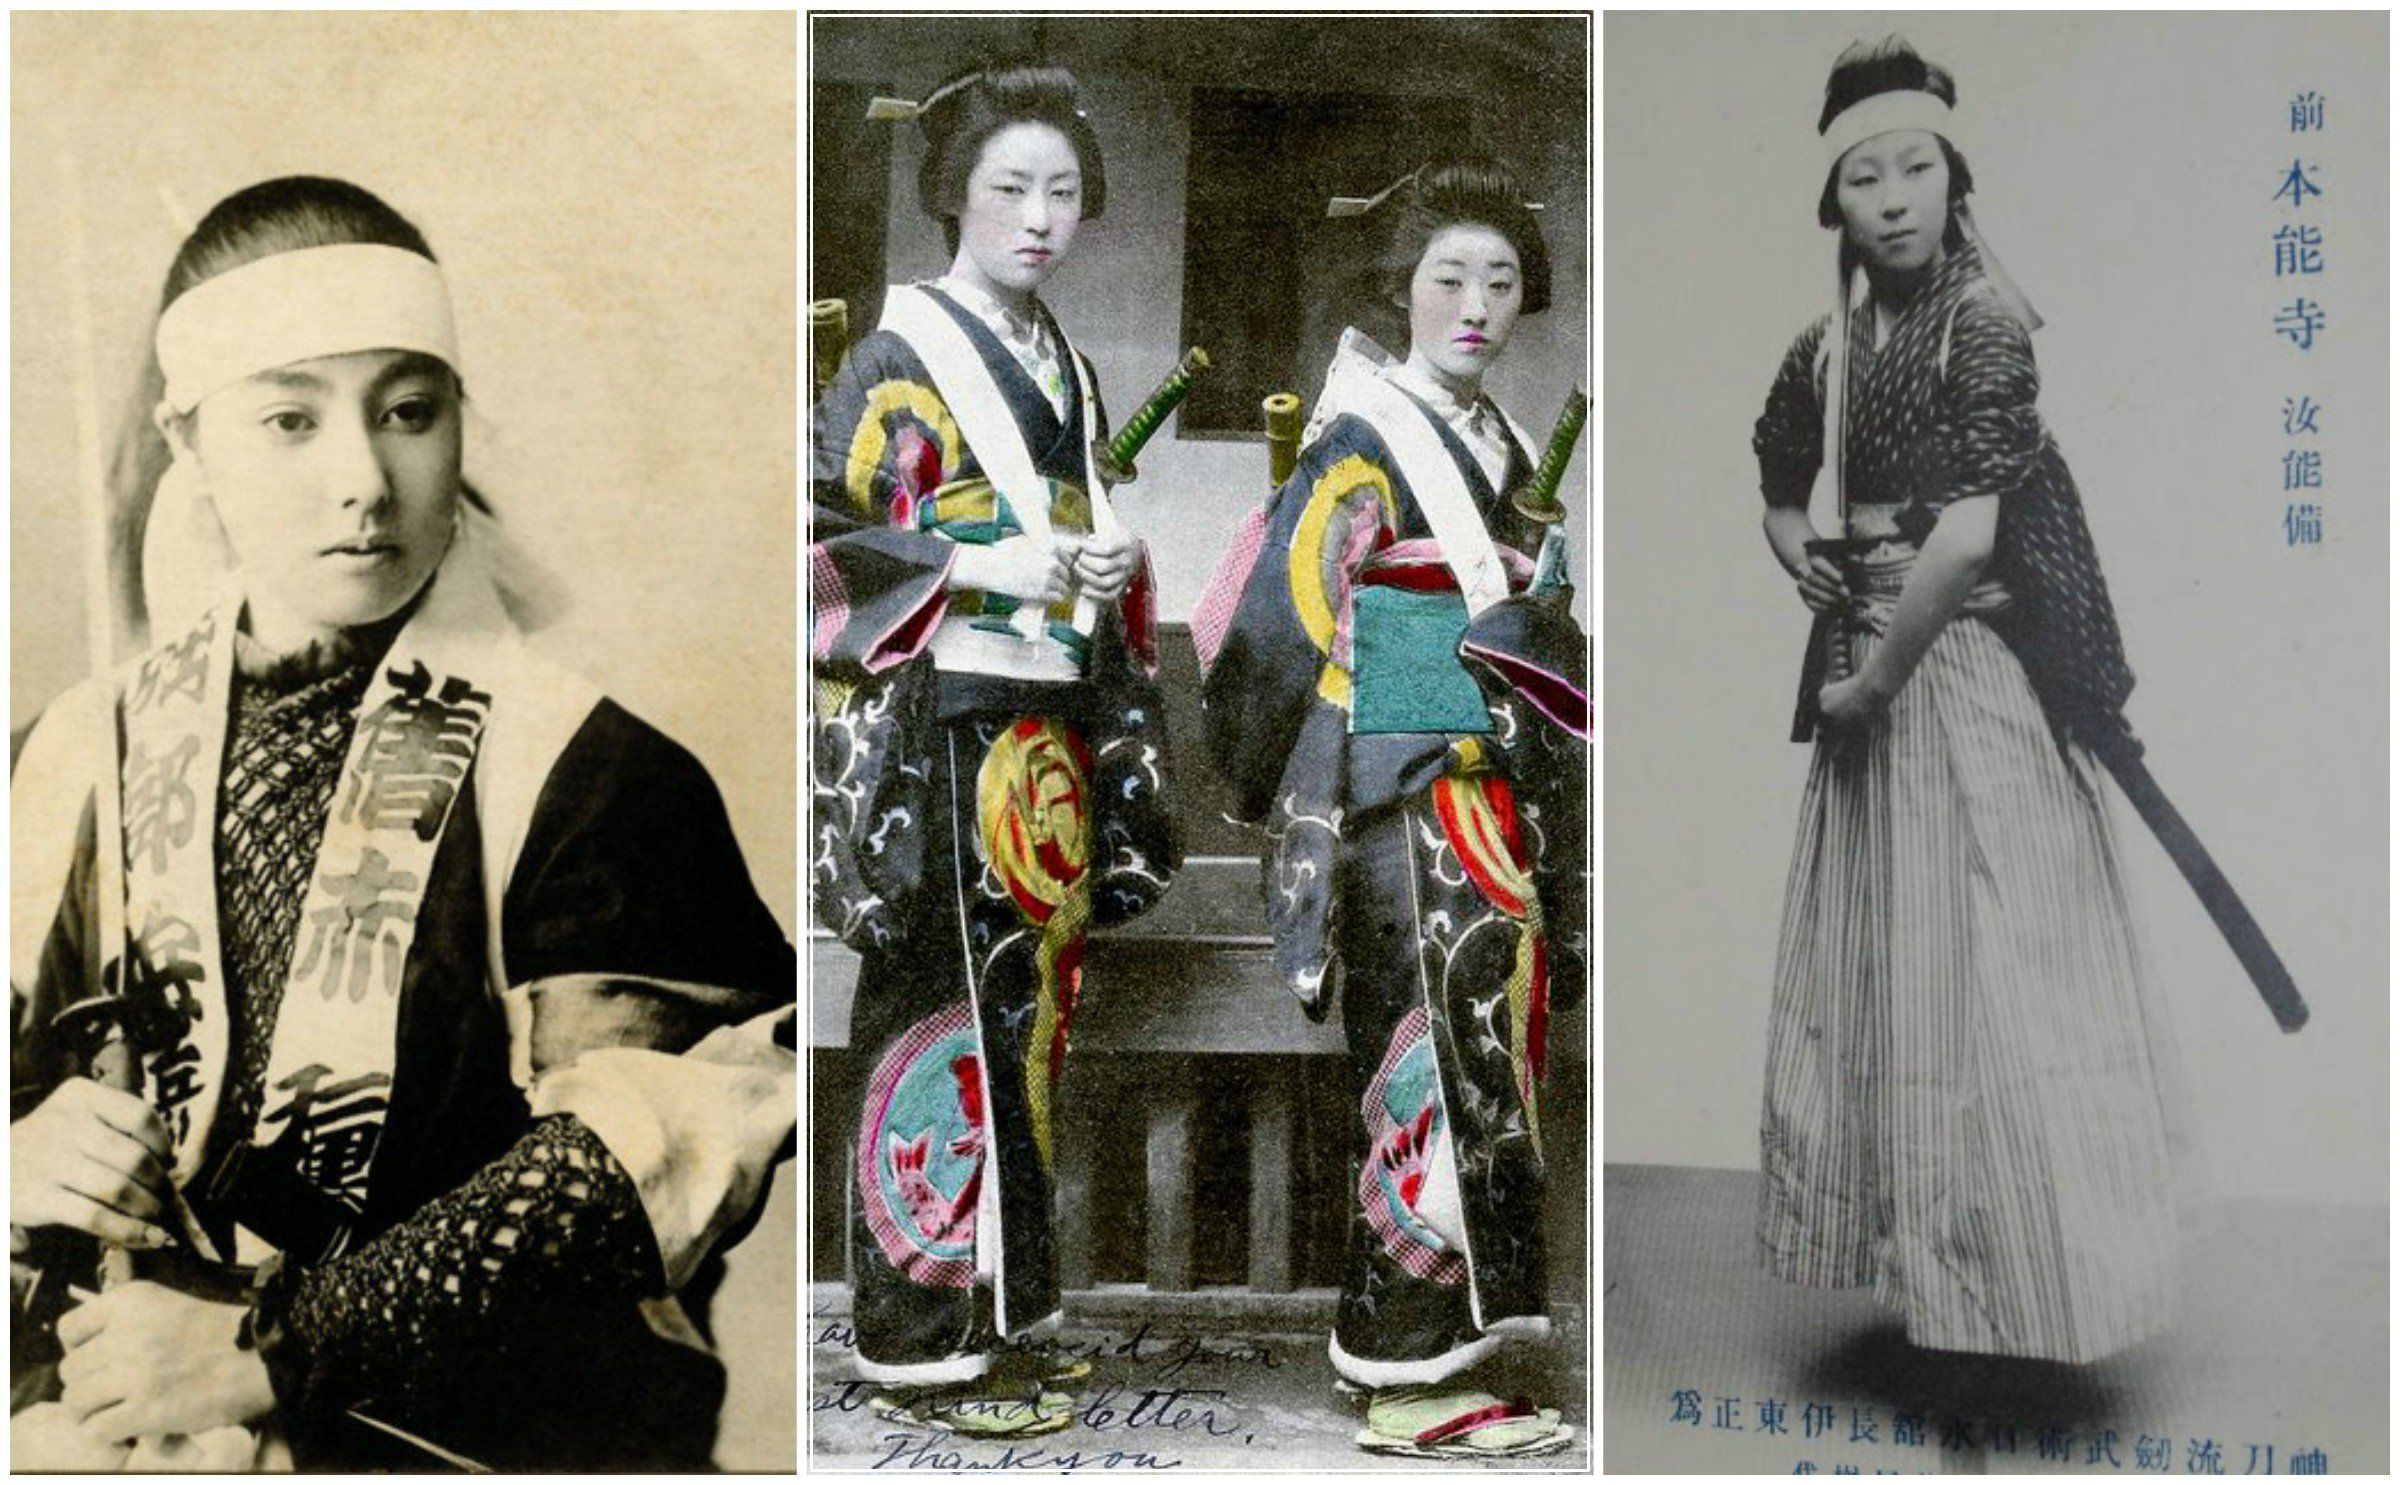 Onna-bugeisha  was a type of female warrior belonging to the Japanese nobility. Many women engaged in battle, commonly alongside samurai men.